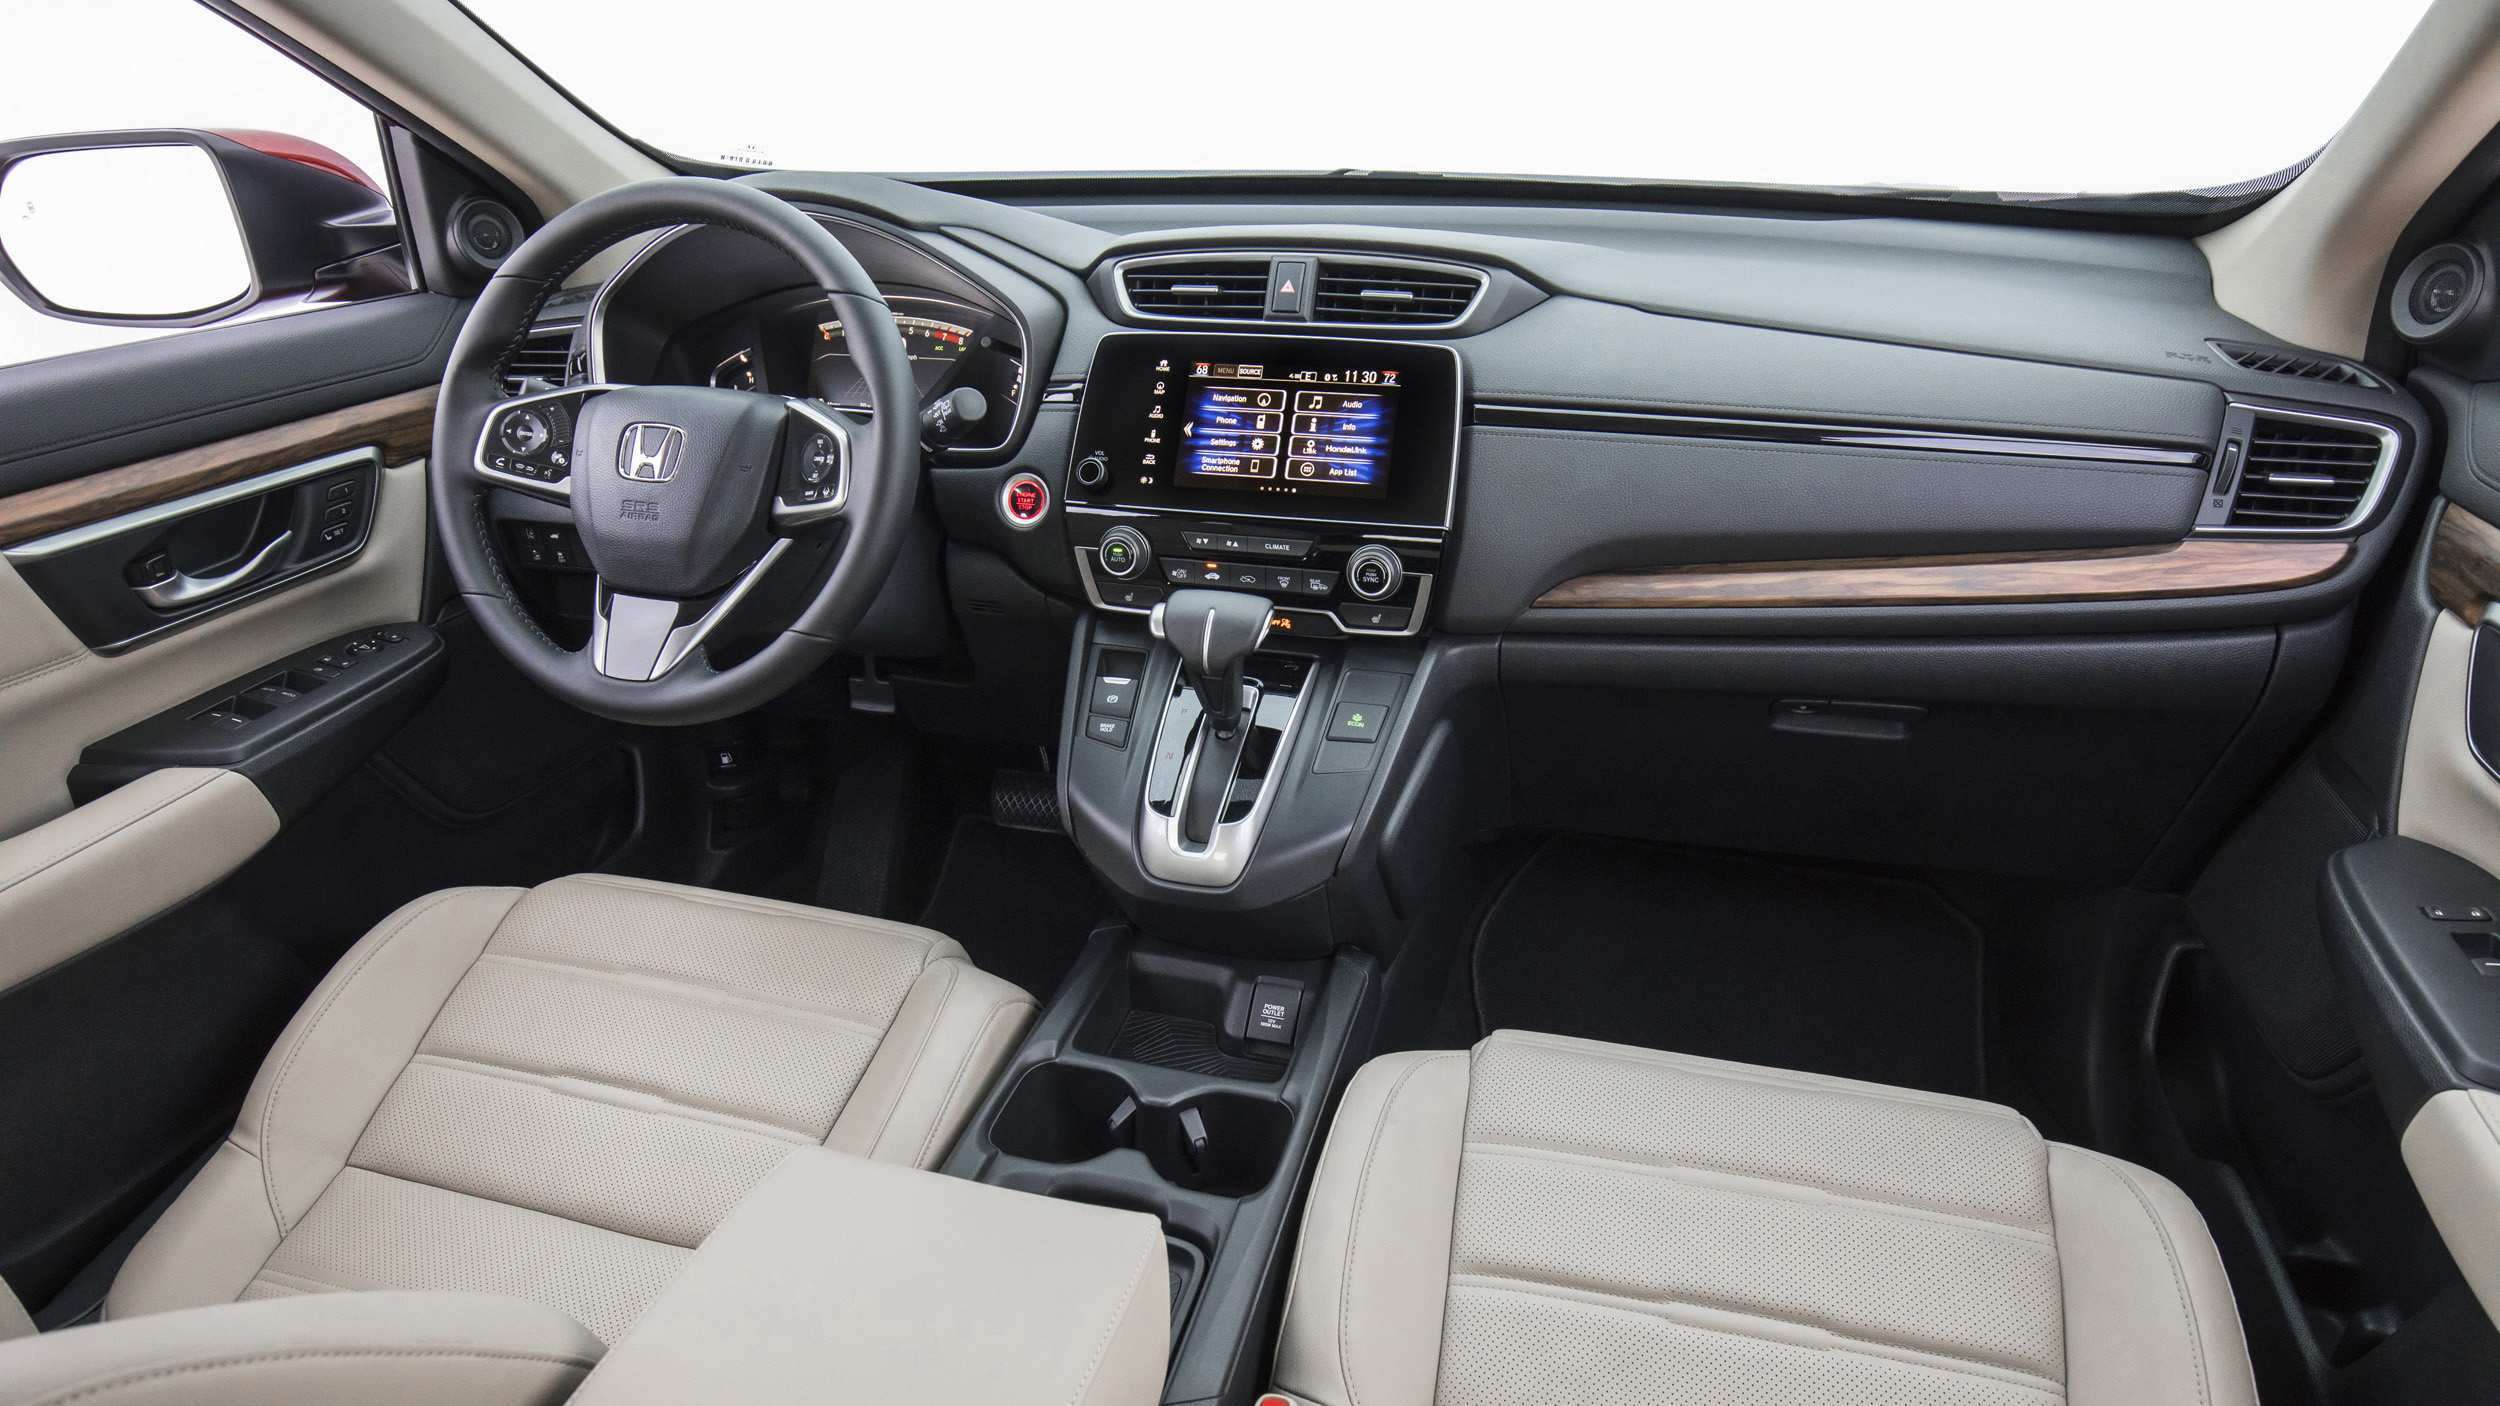 73 The Best 2019 Honda CRV Model